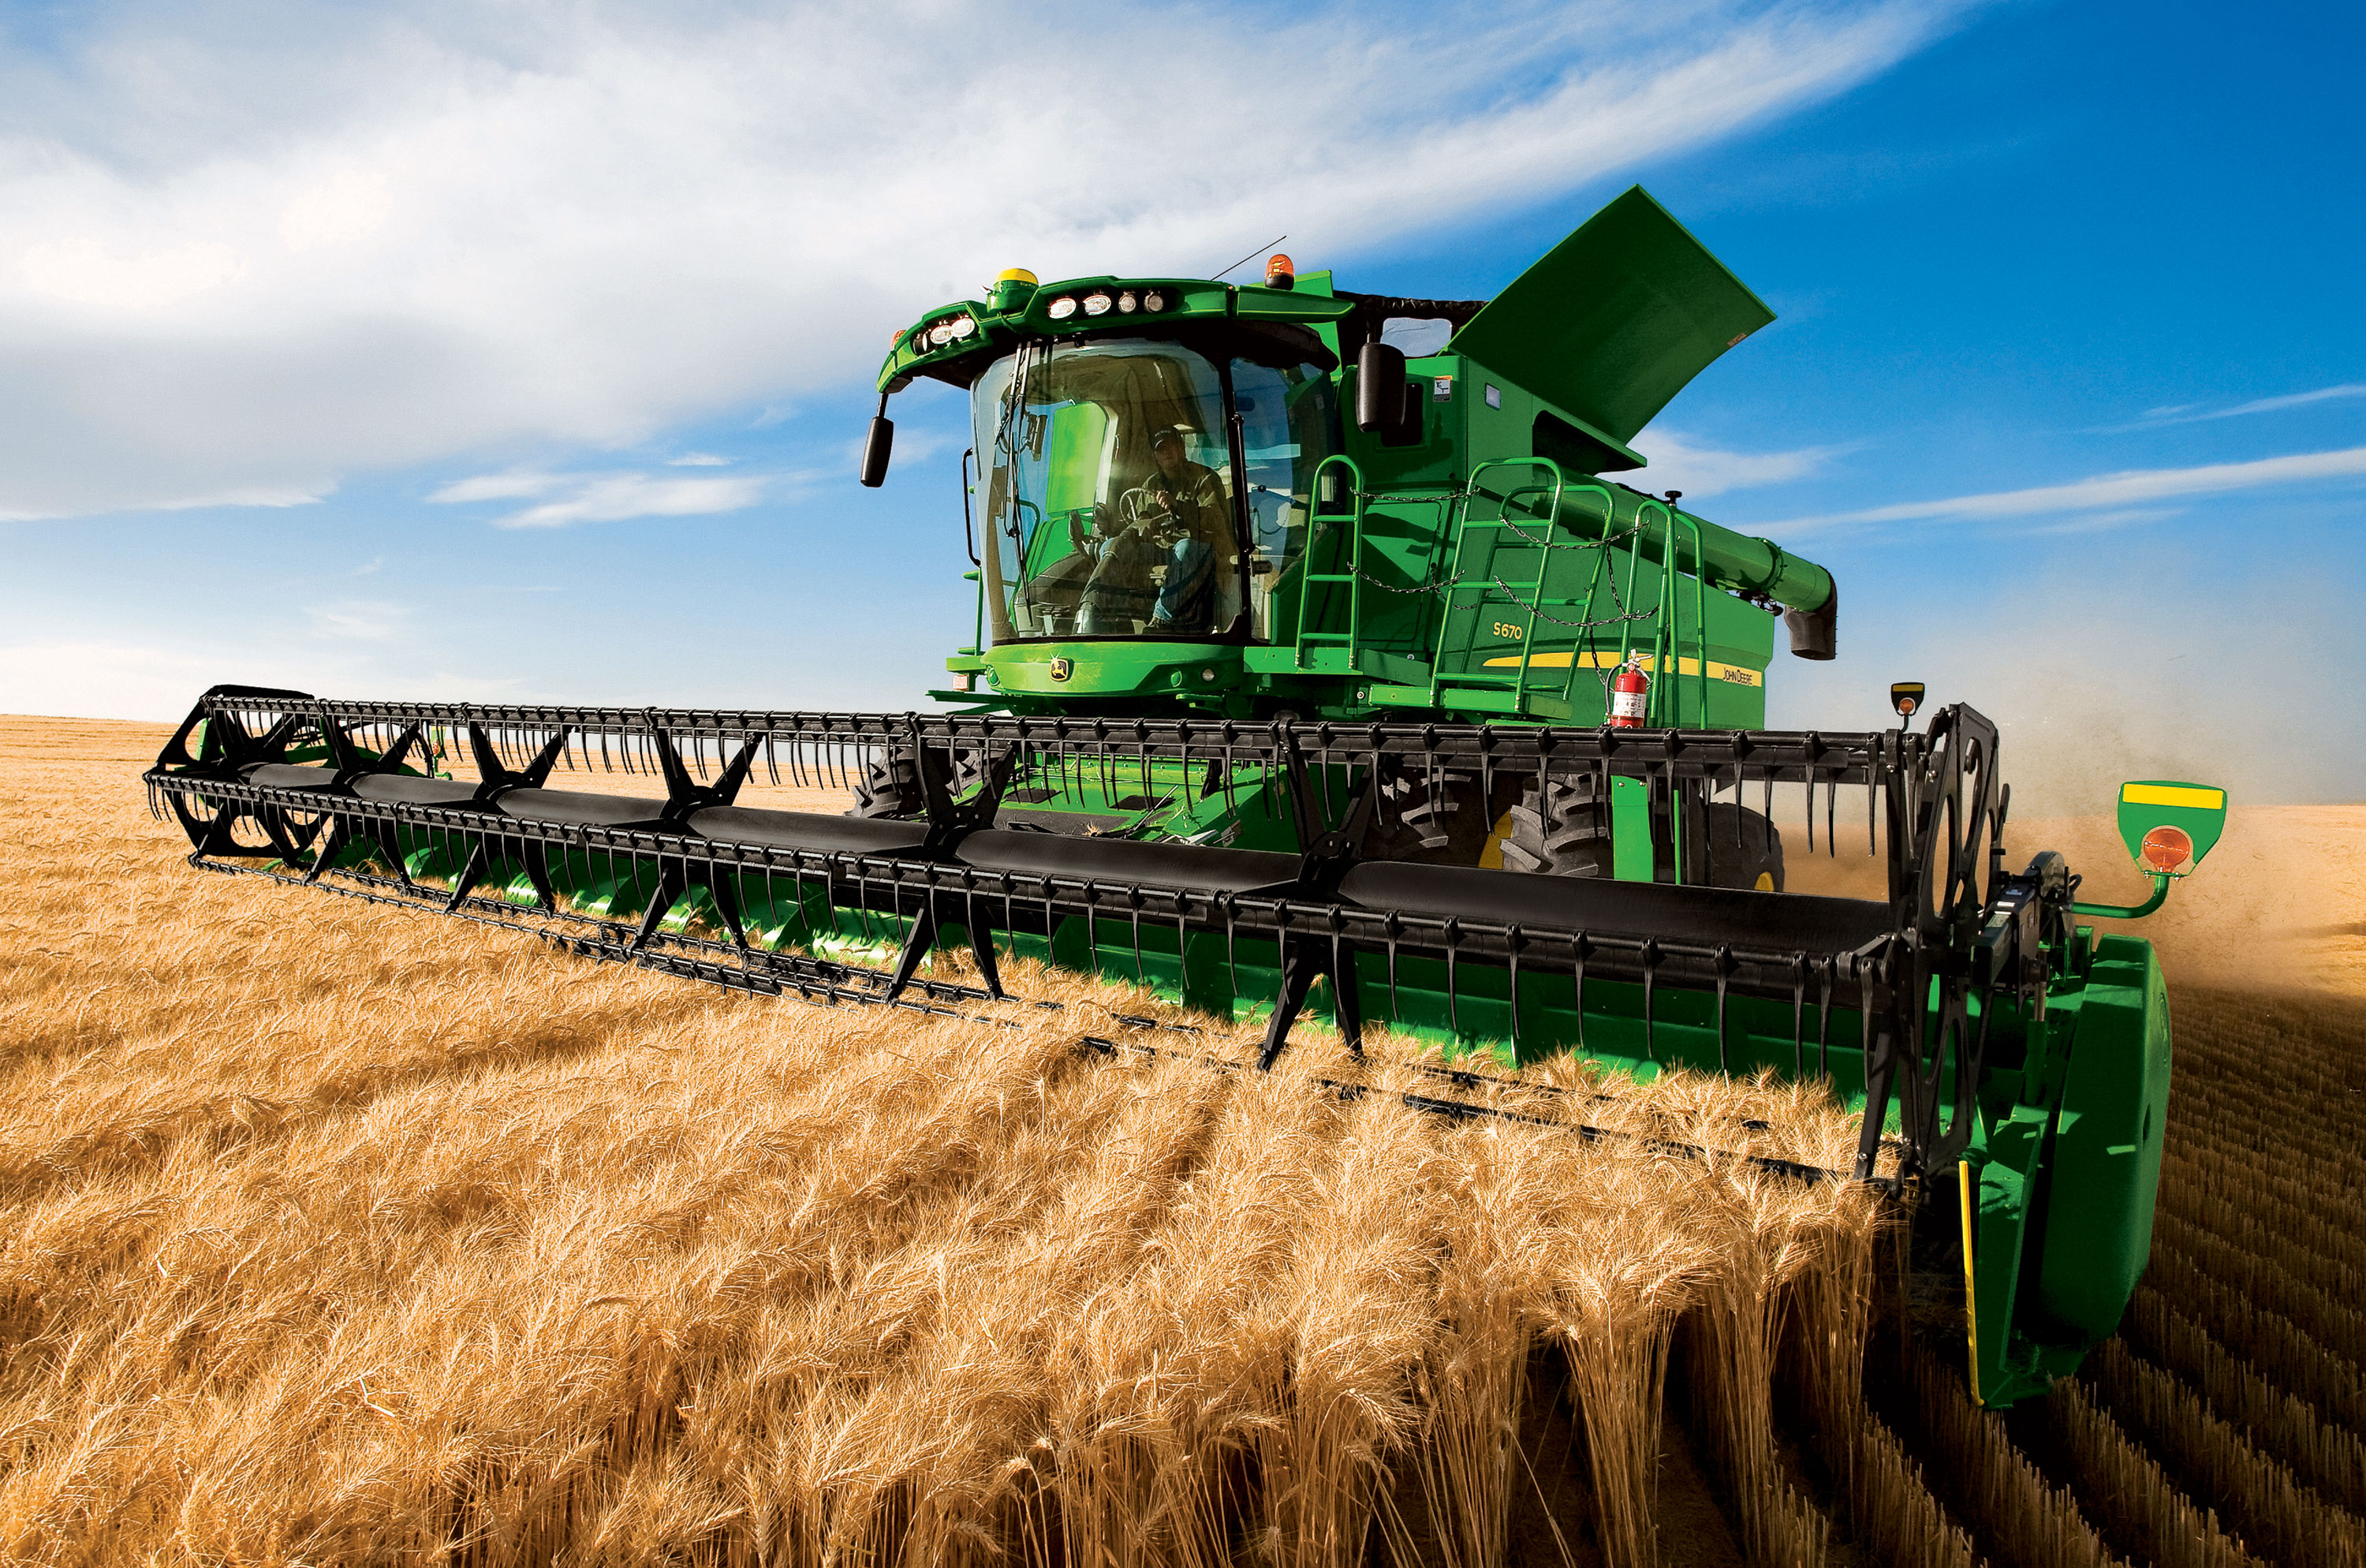 John Deere Tractors Product : John deere innovation revolutionary products from